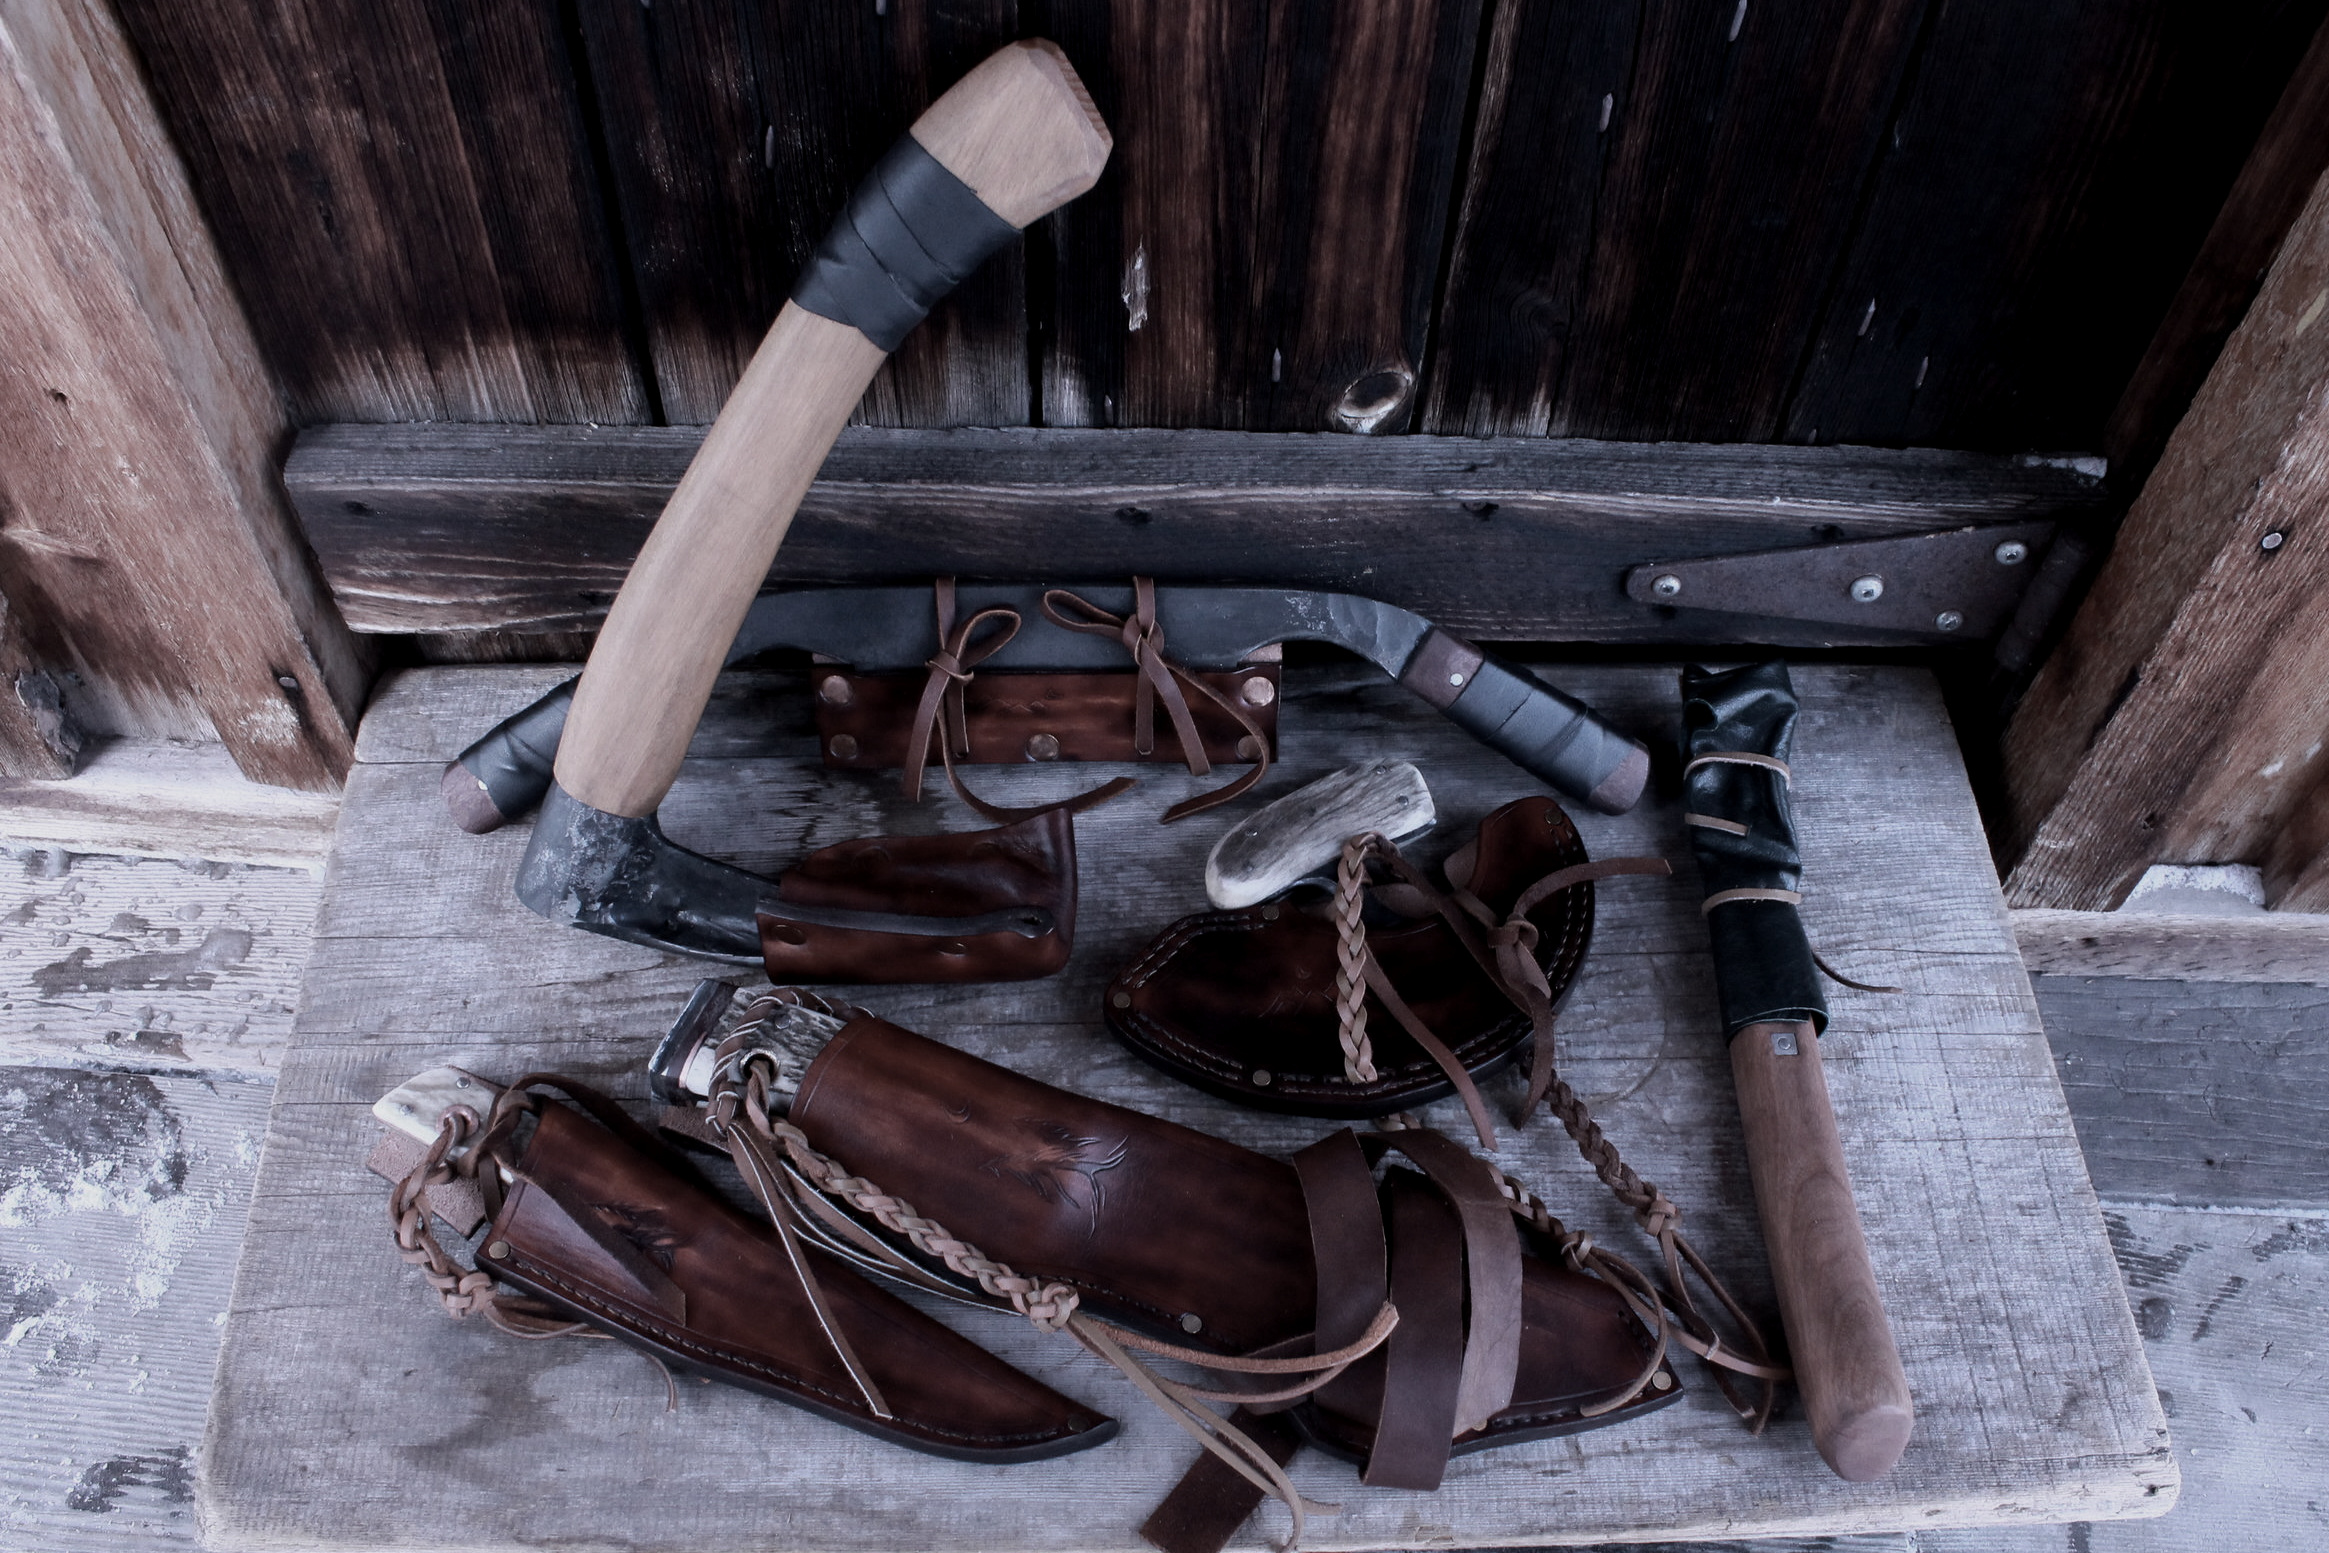 Handmade Survival Tools all protected their custom sheaths.